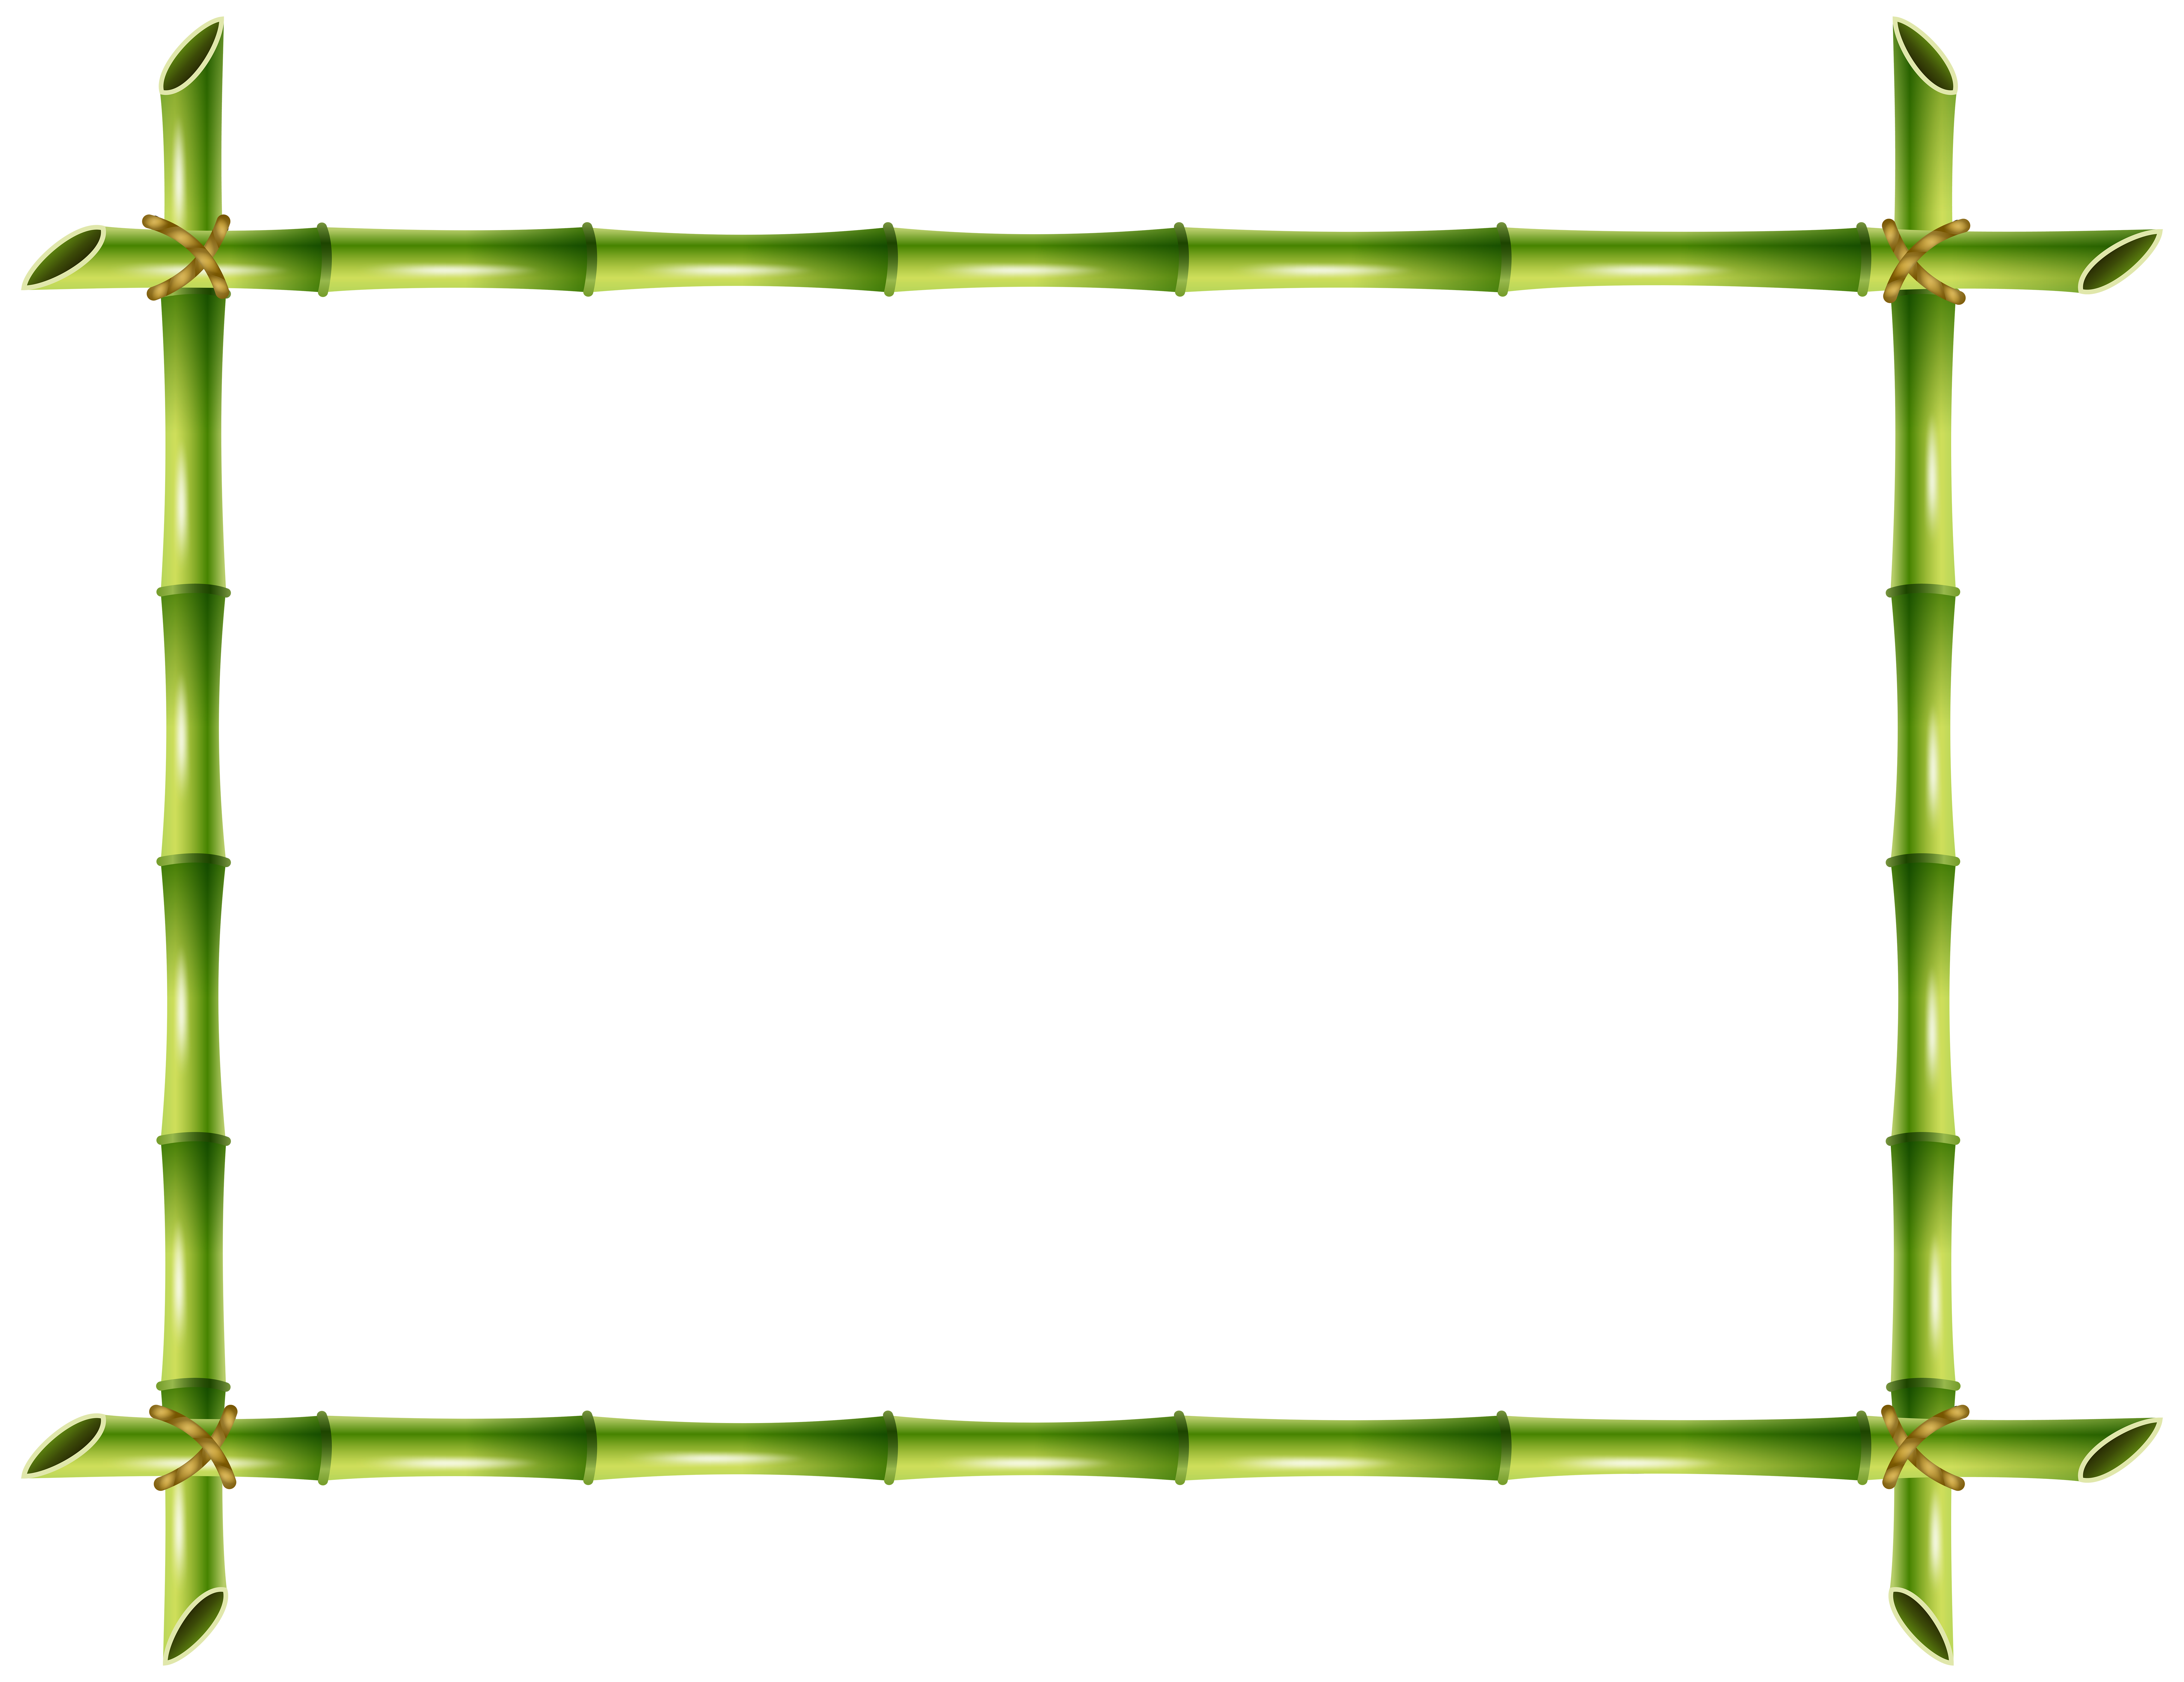 Bamboo clipart bamboo pole Yopriceville Transparent PNG size View